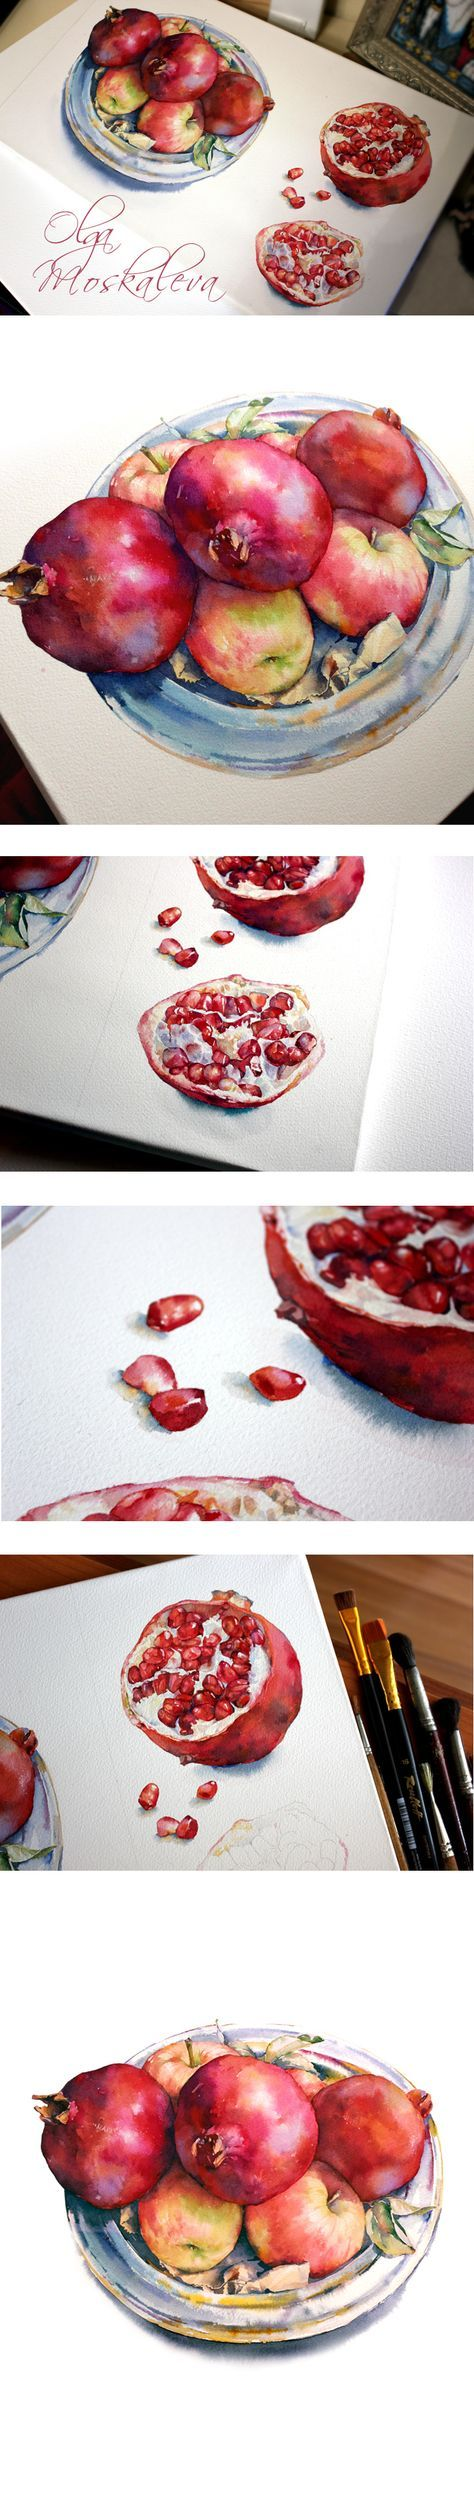 Watercolor illustration of pomegranates and apples